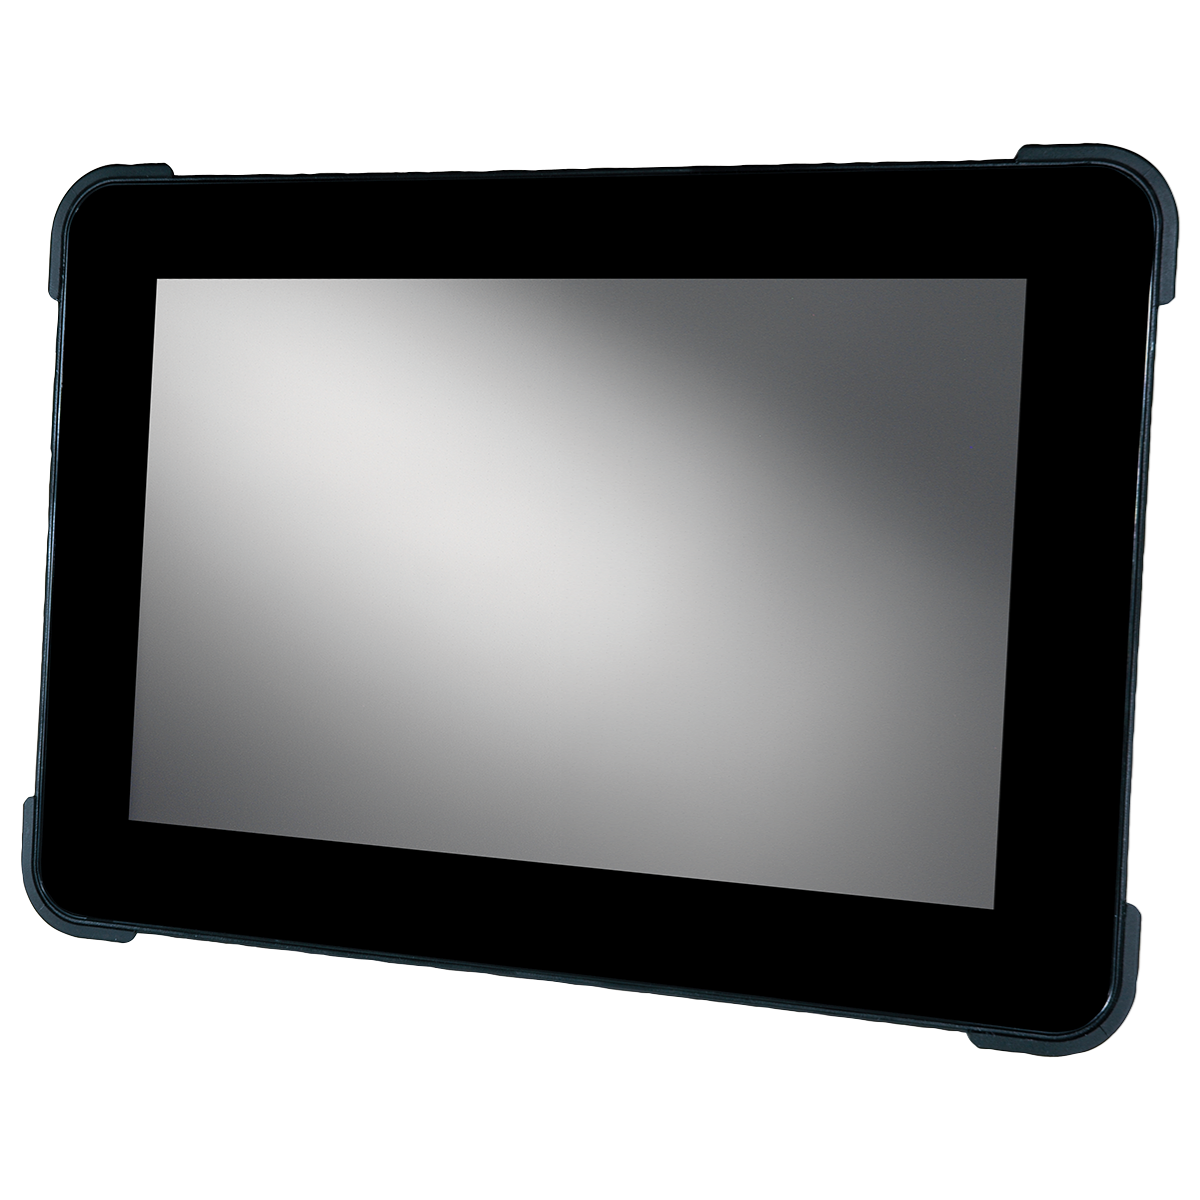 Hisense HM-616 Android POS Tablet